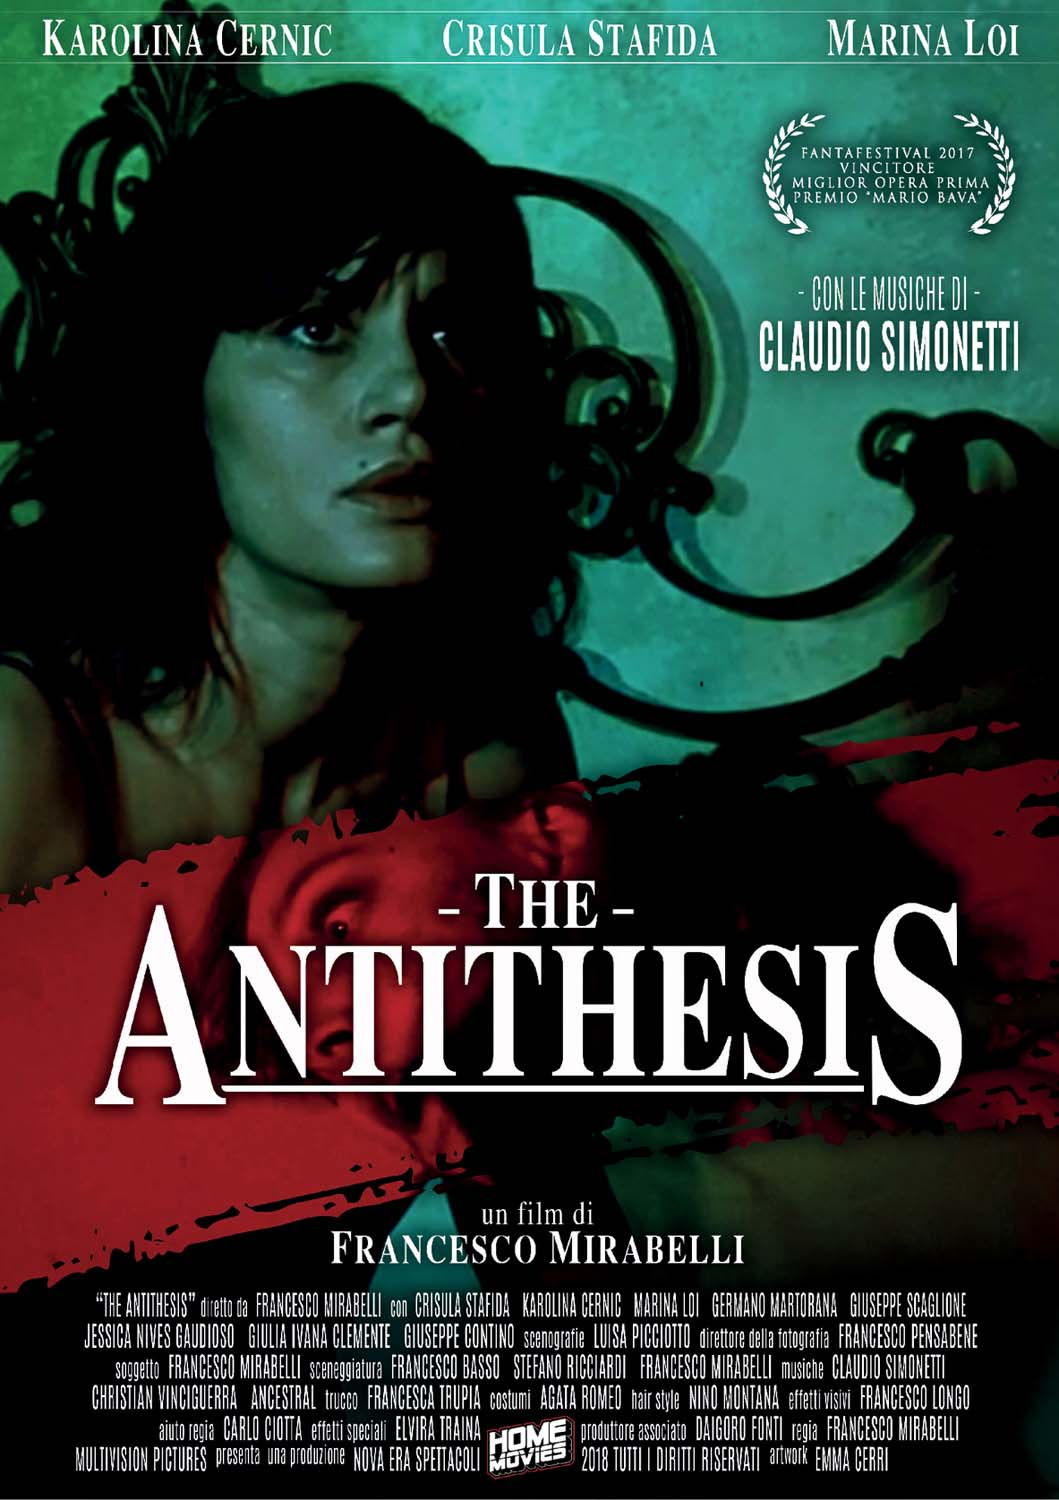 THE ANTITHESIS (DVD)